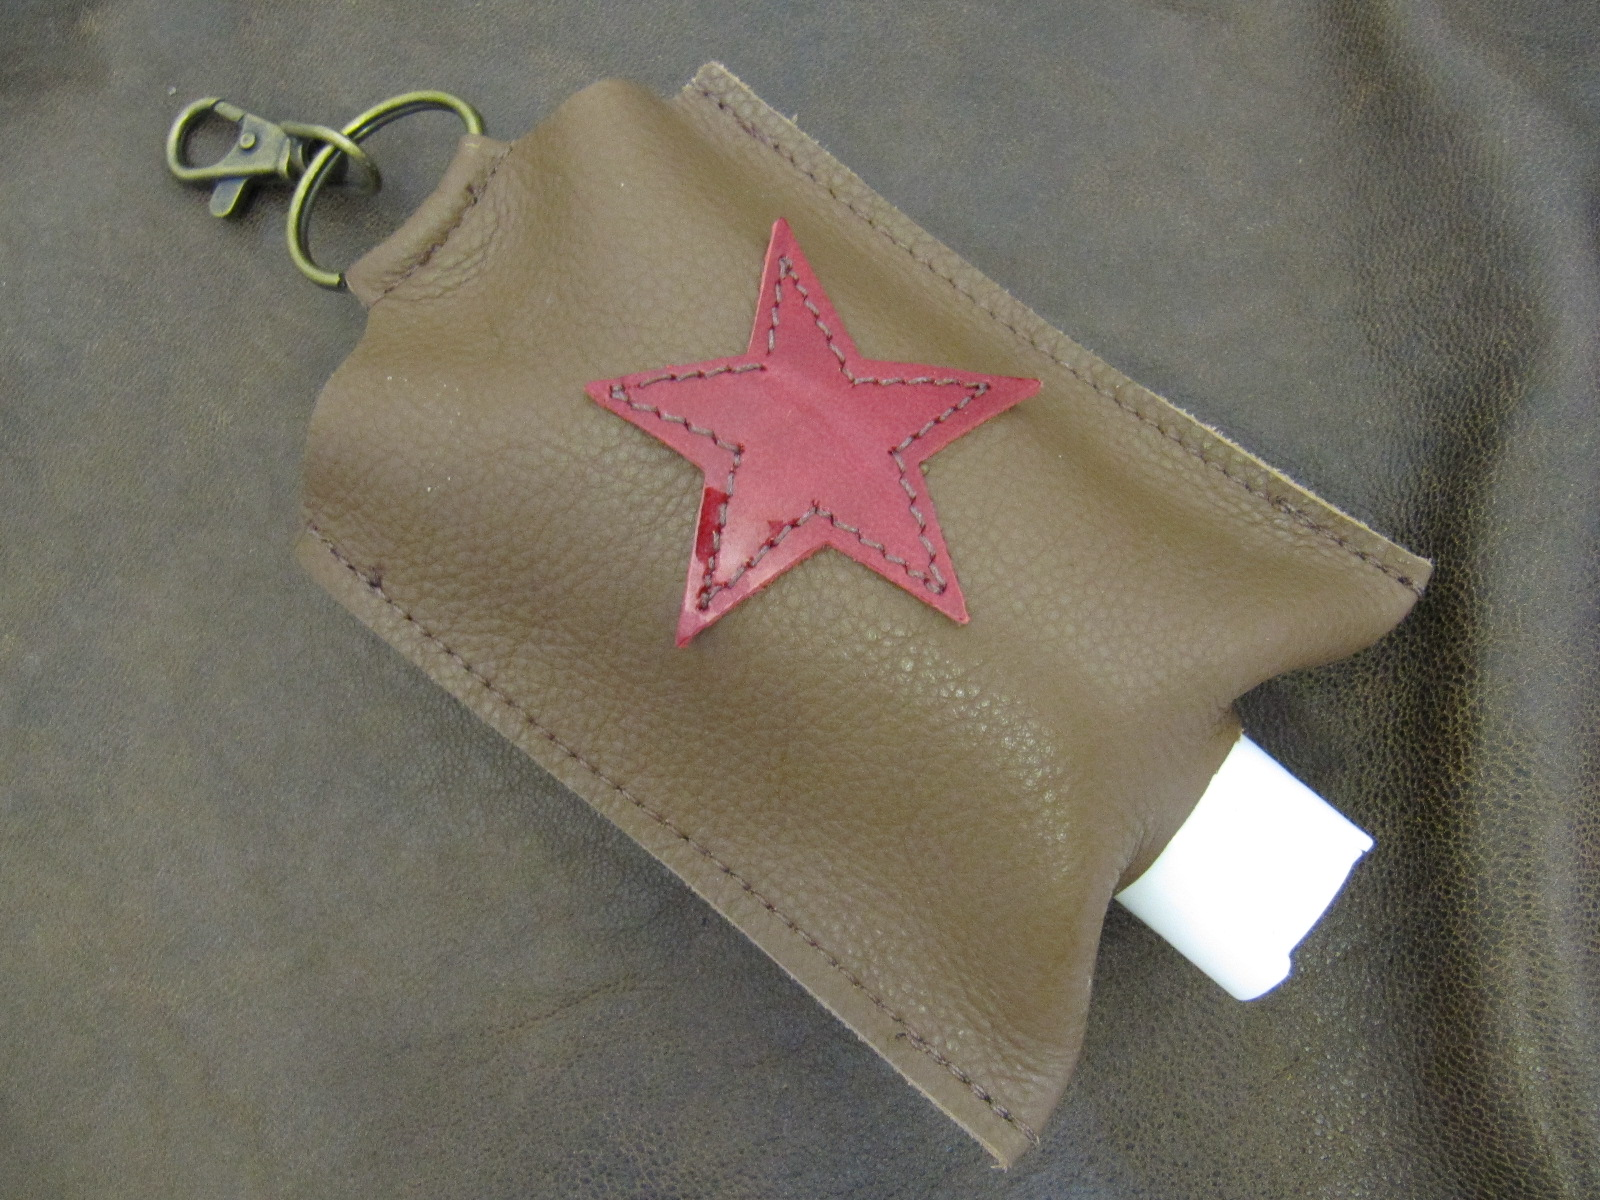 Leather Hand Sanitizer Carrier - Brown with Red Star